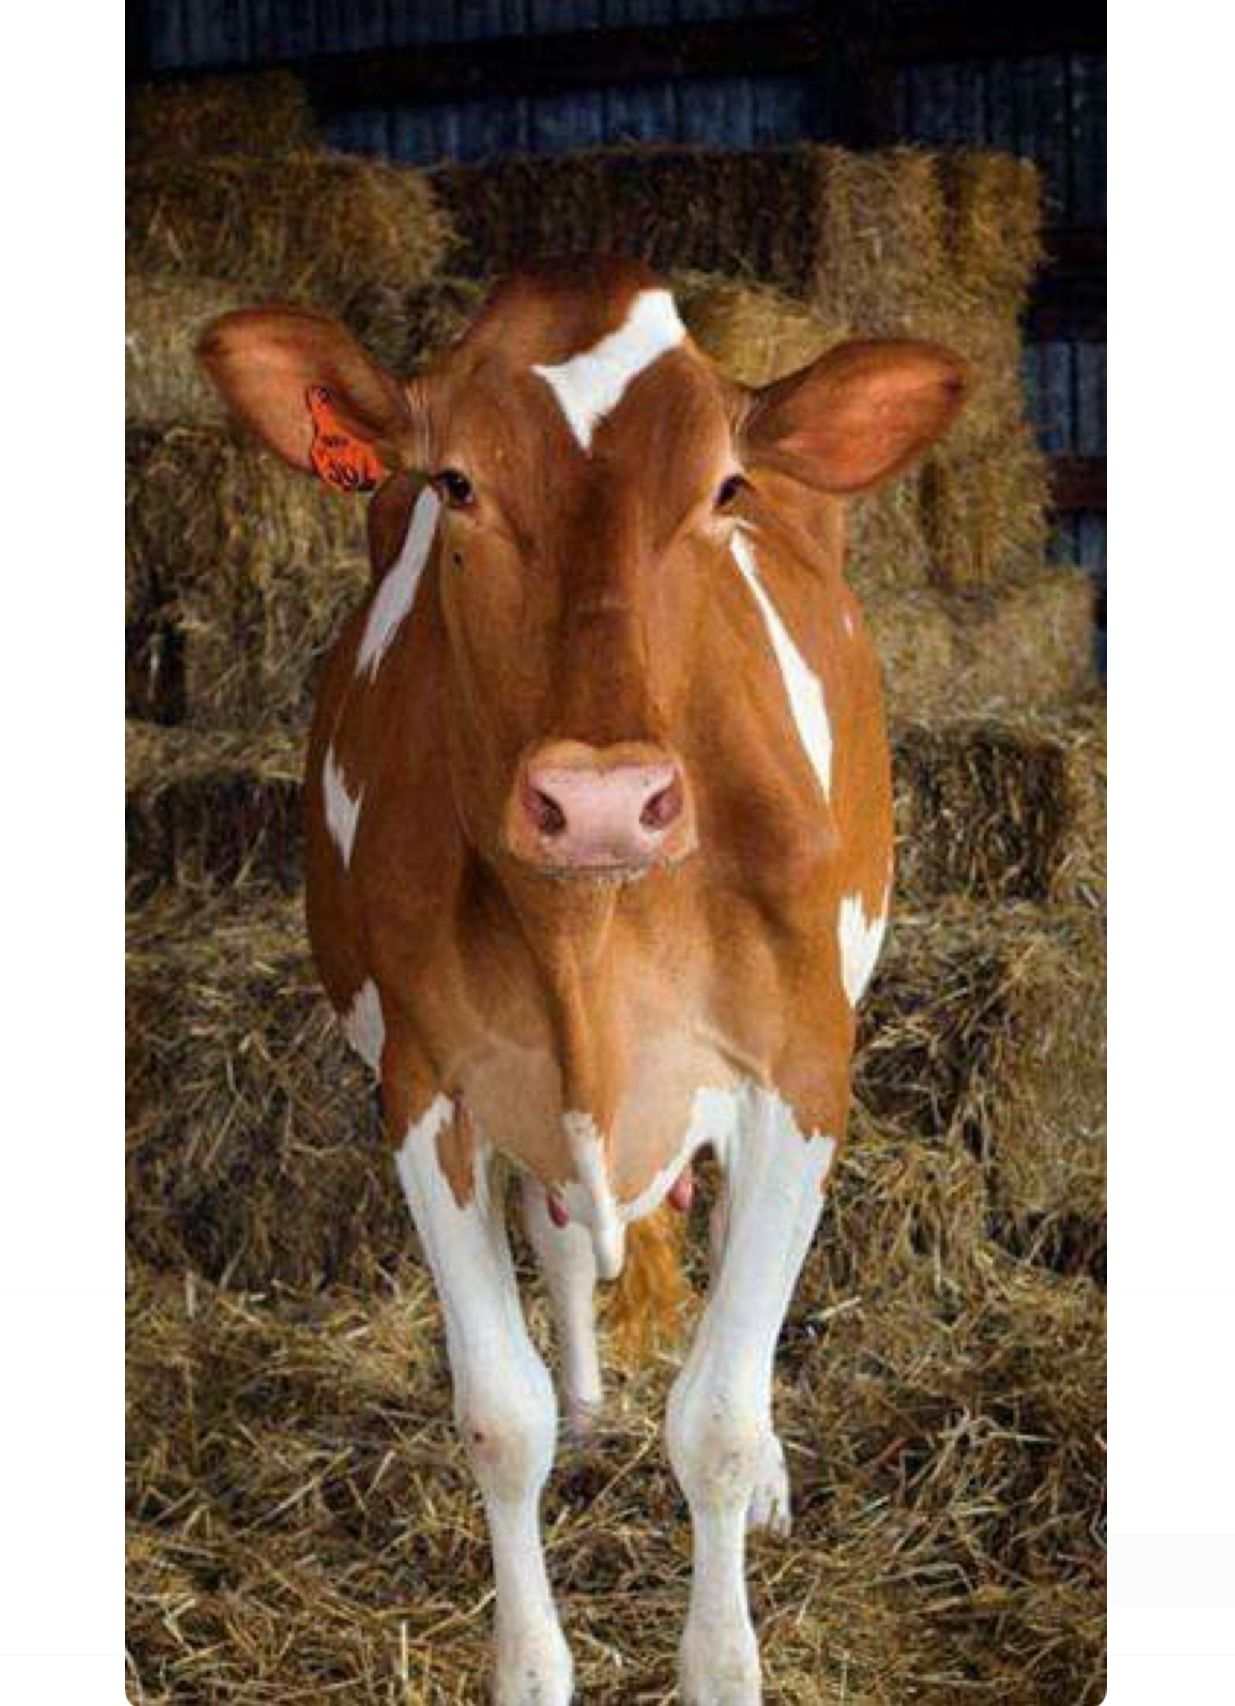 Pretty brown and white dairy cow. Red Holstein or Guernsey